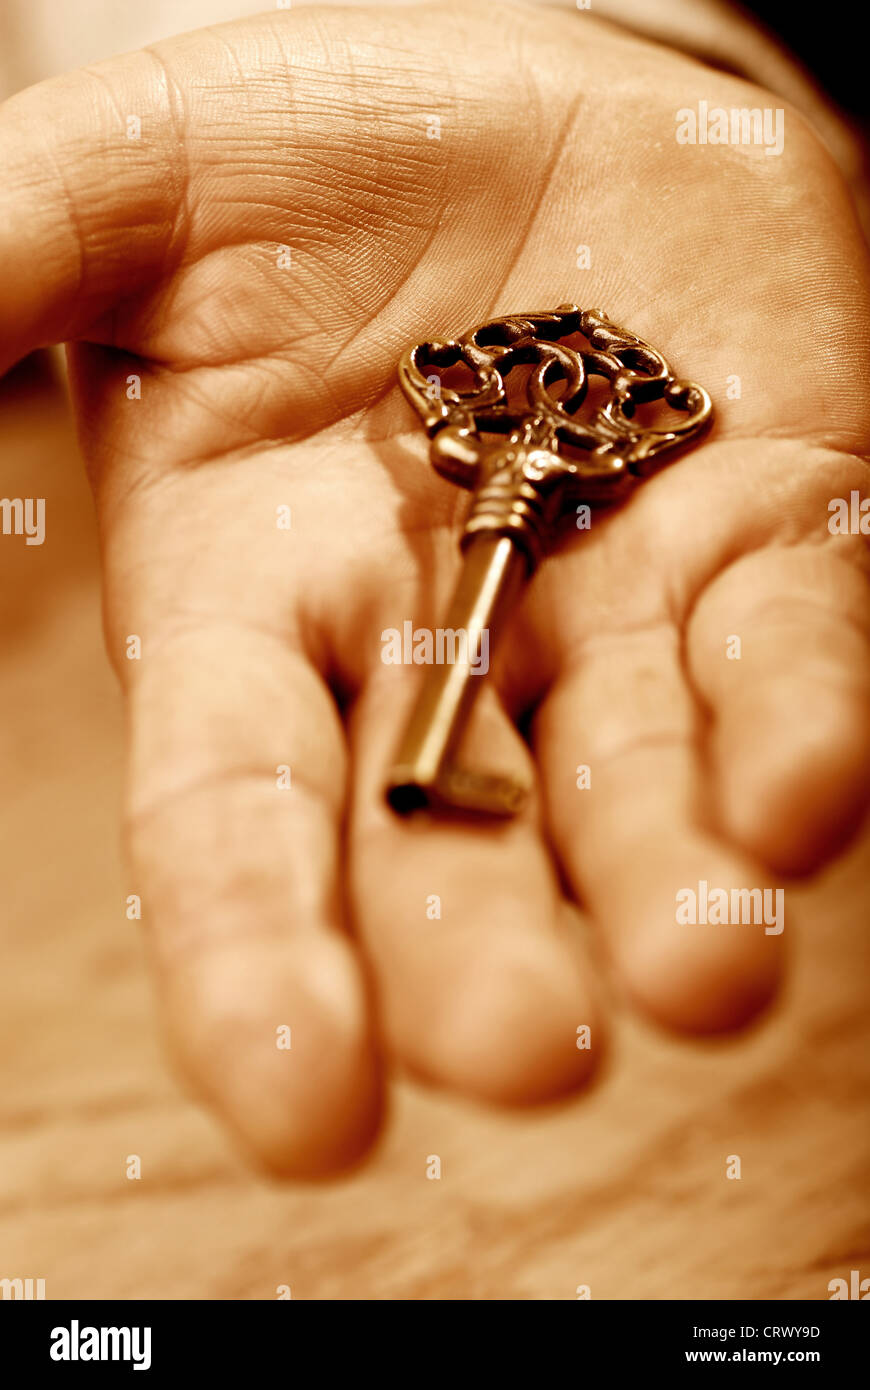 Hand with key, sepia tones  - Stock Image